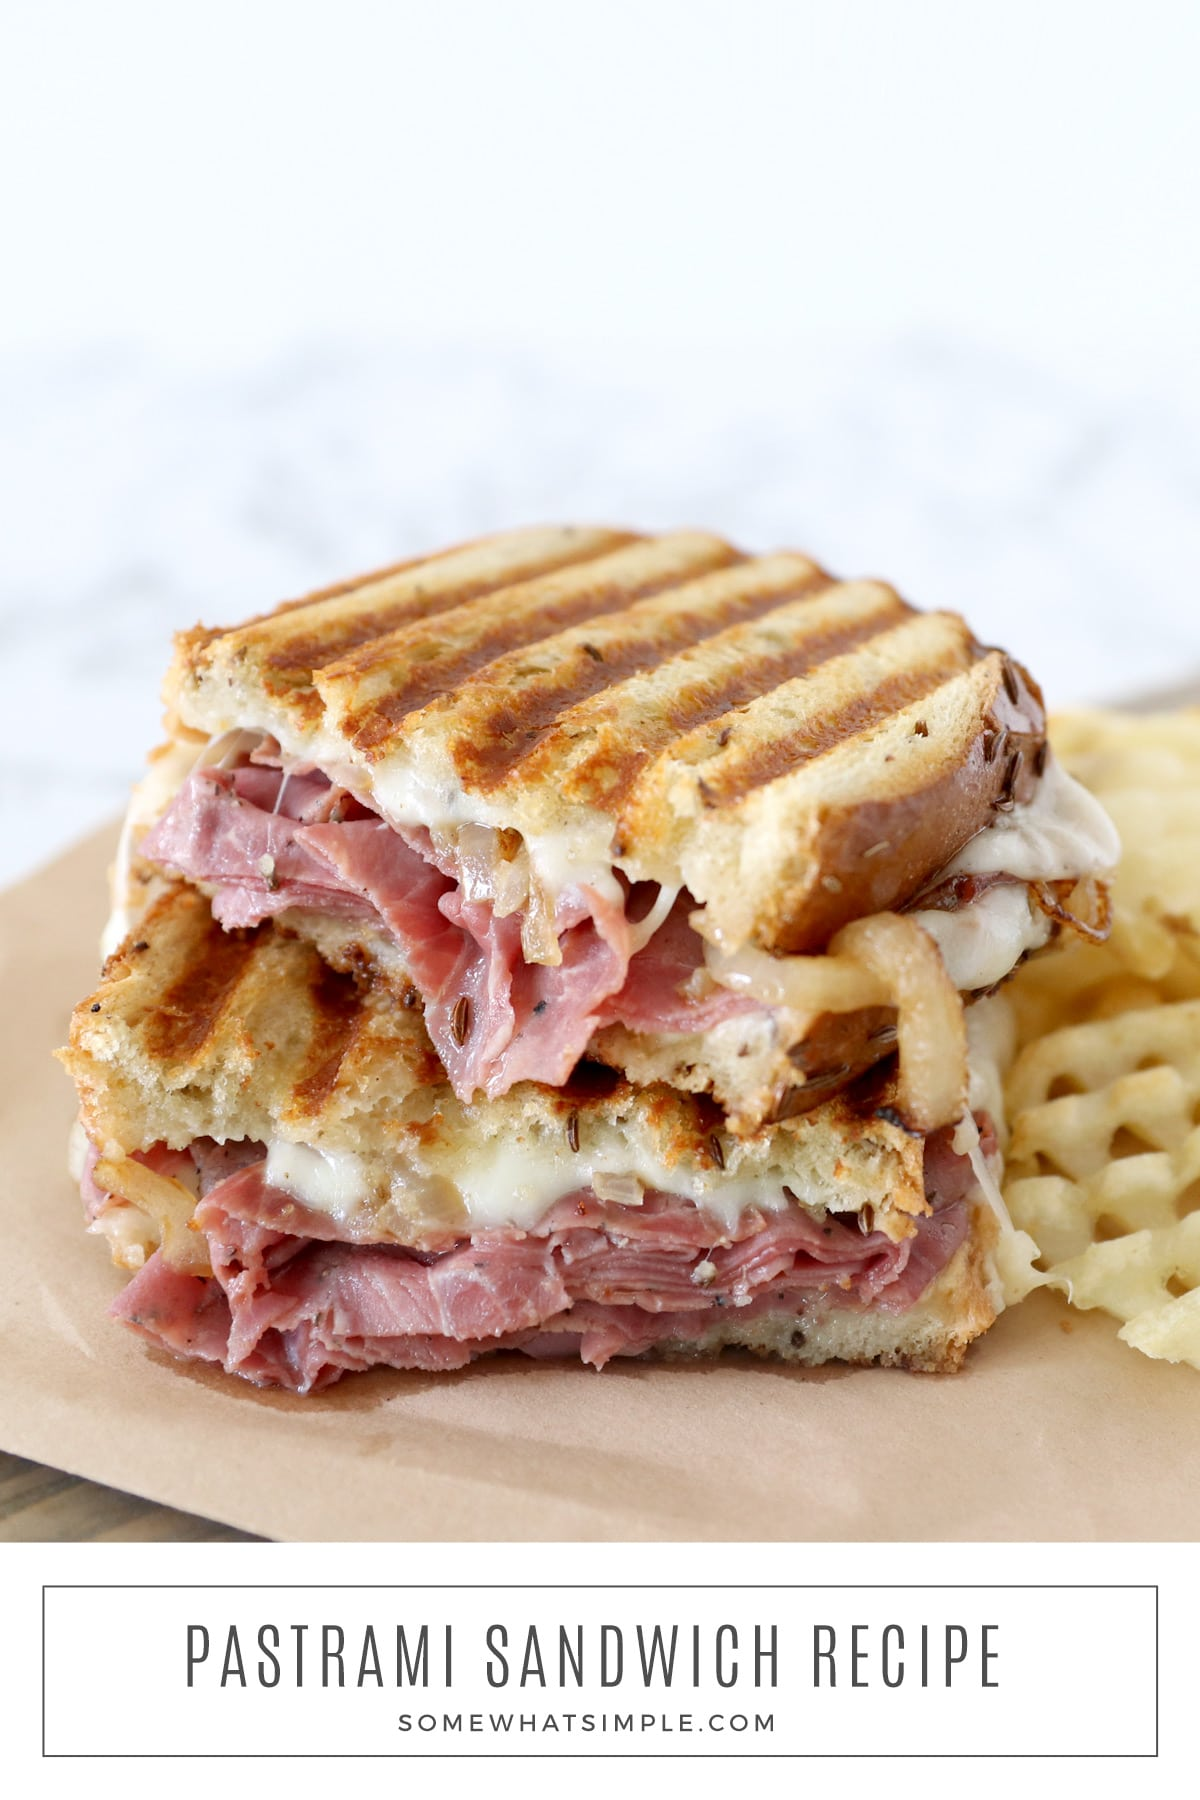 This pastrami sandwich recipe is perfect for those times when you need a quick and easy dinner idea. Delicious bread loaded with hot pastrami, grilled onions, mustard, cheese, and crispy waffle fries, this recipe is easy to make unbelievably tasty! via @somewhatsimple